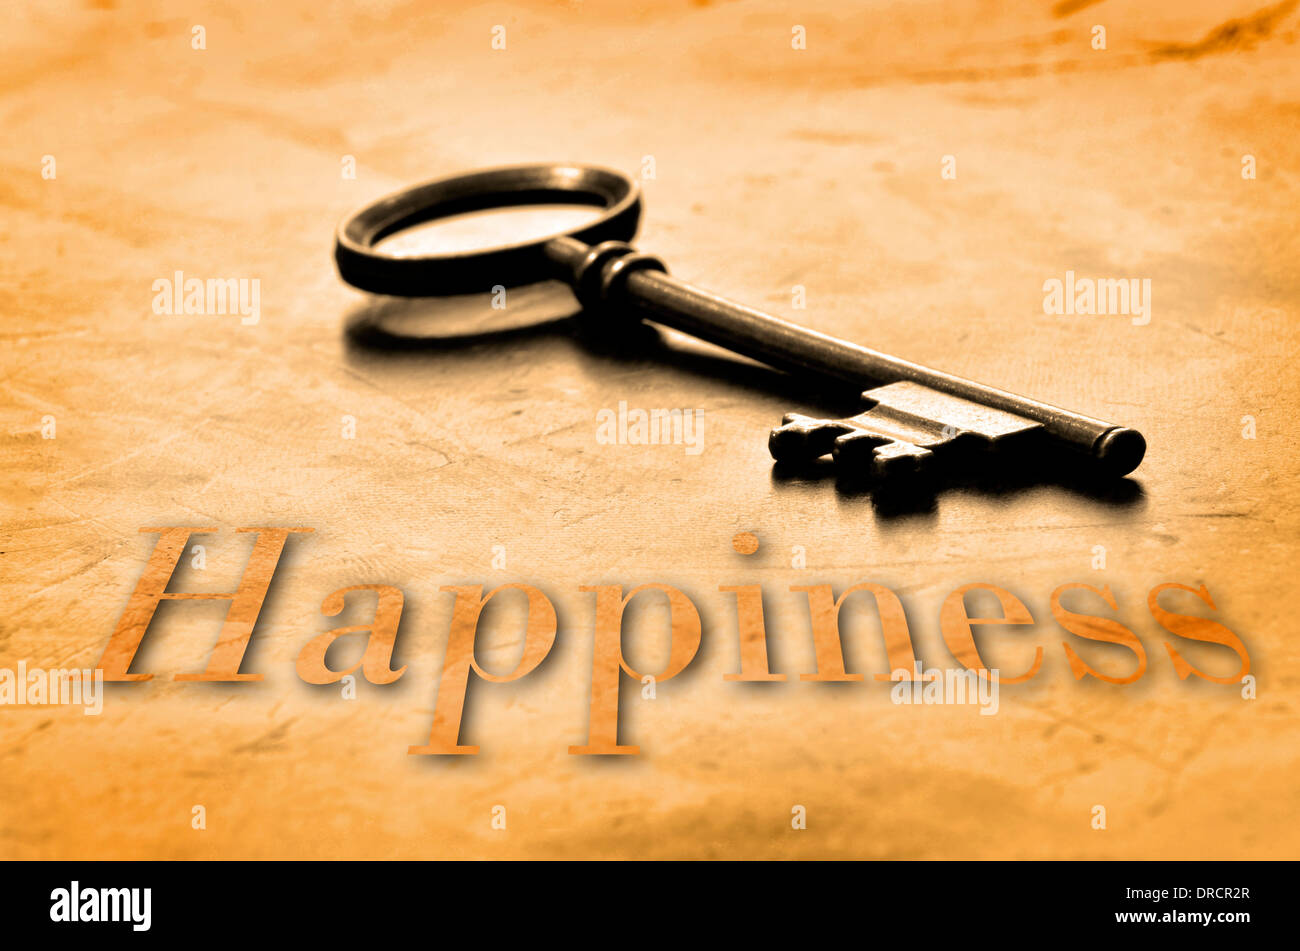 Key to Happiness on an old worn wooden desk top - Stock Image